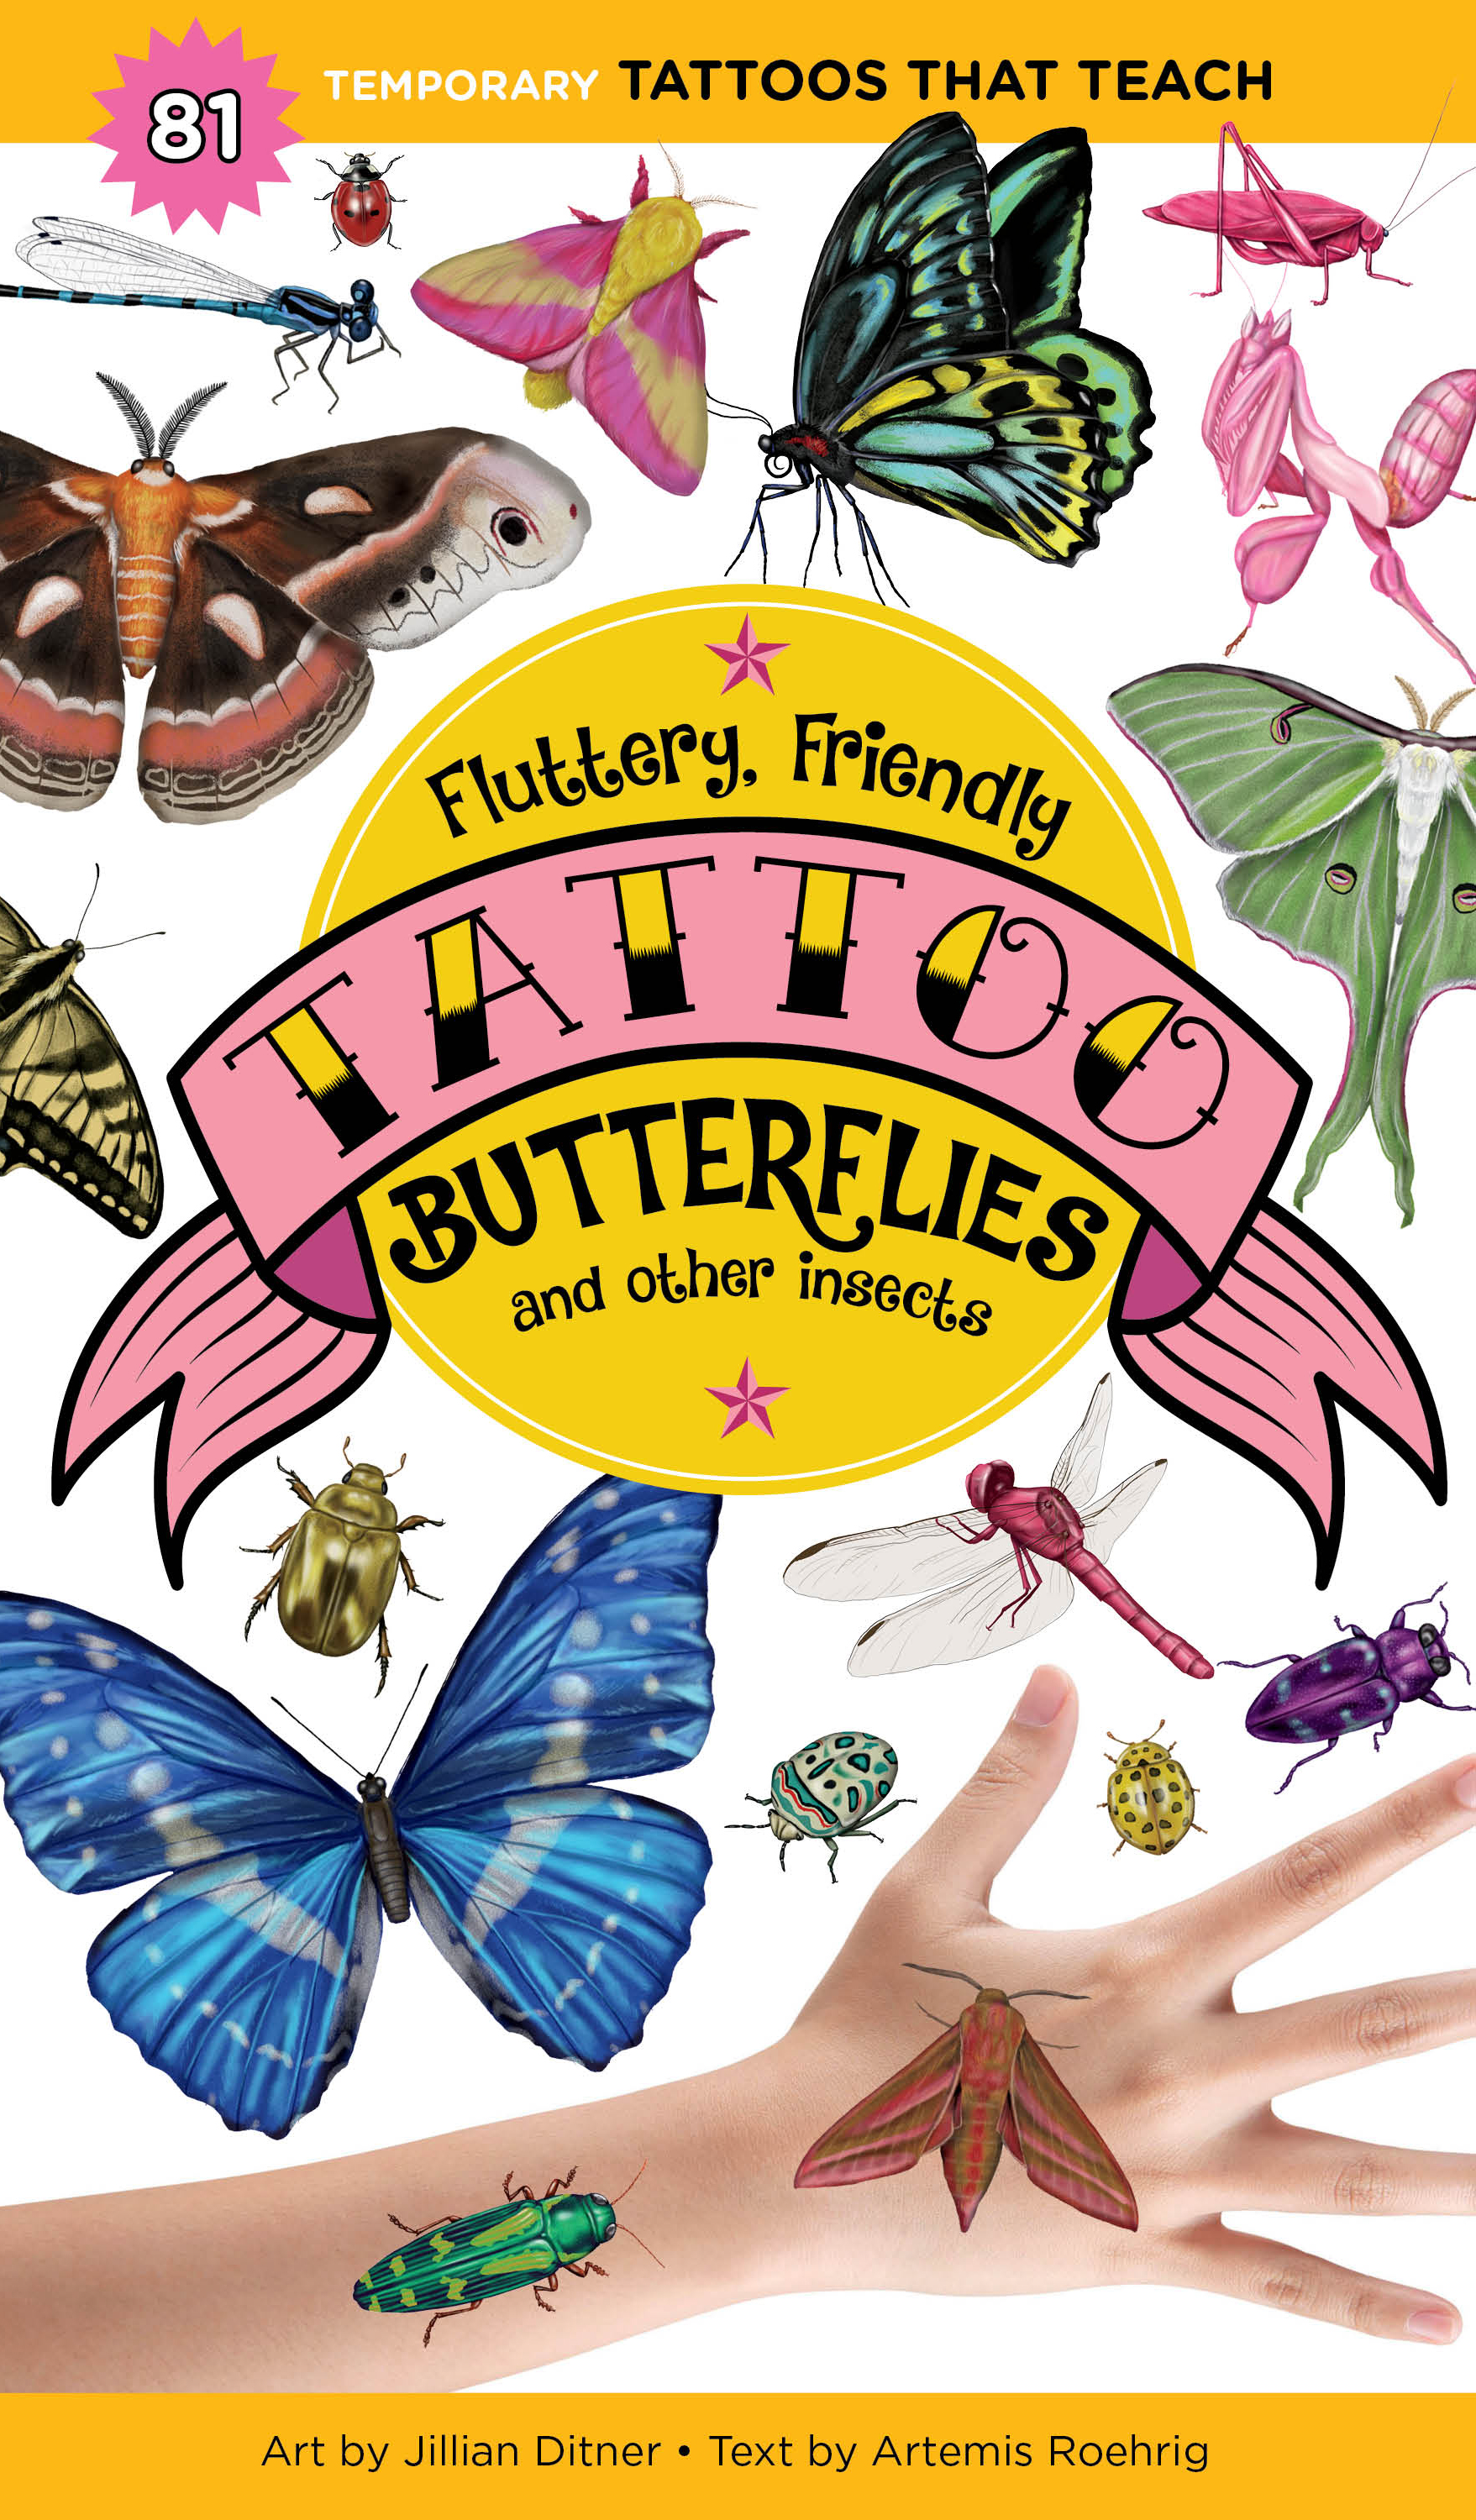 Fluttery, Friendly Tattoo Butterflies and Other Insects 81 Temporary Tattoos That Teach - Artemis Roehrig